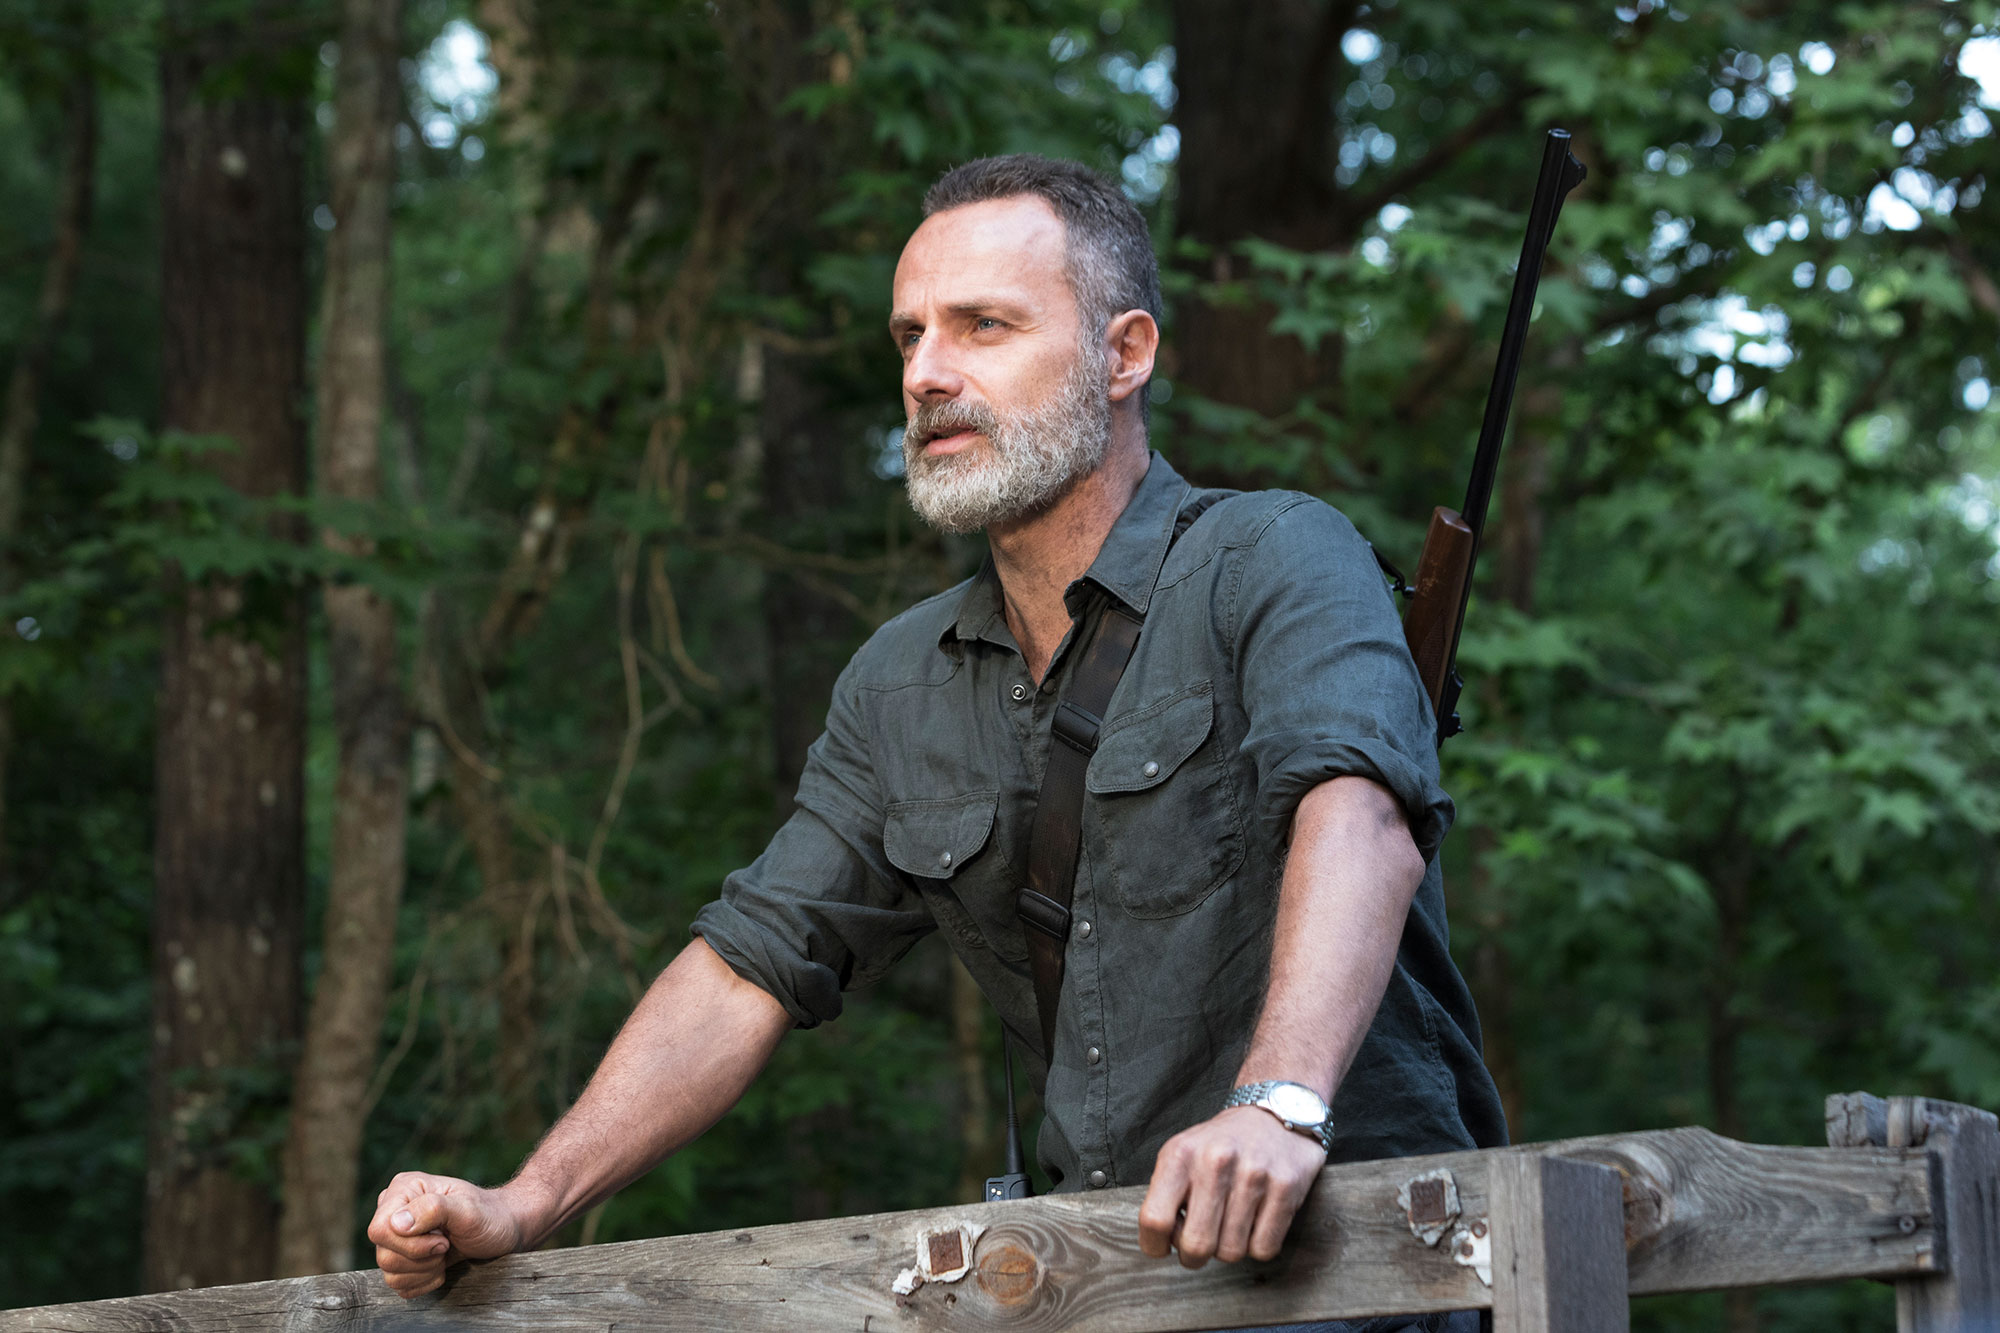 the walking dead Andrew Lincoln as Rick Grimes - Andrew Lincoln as Rick Grimes – The Walking Dead _ Season 9, Episode 2